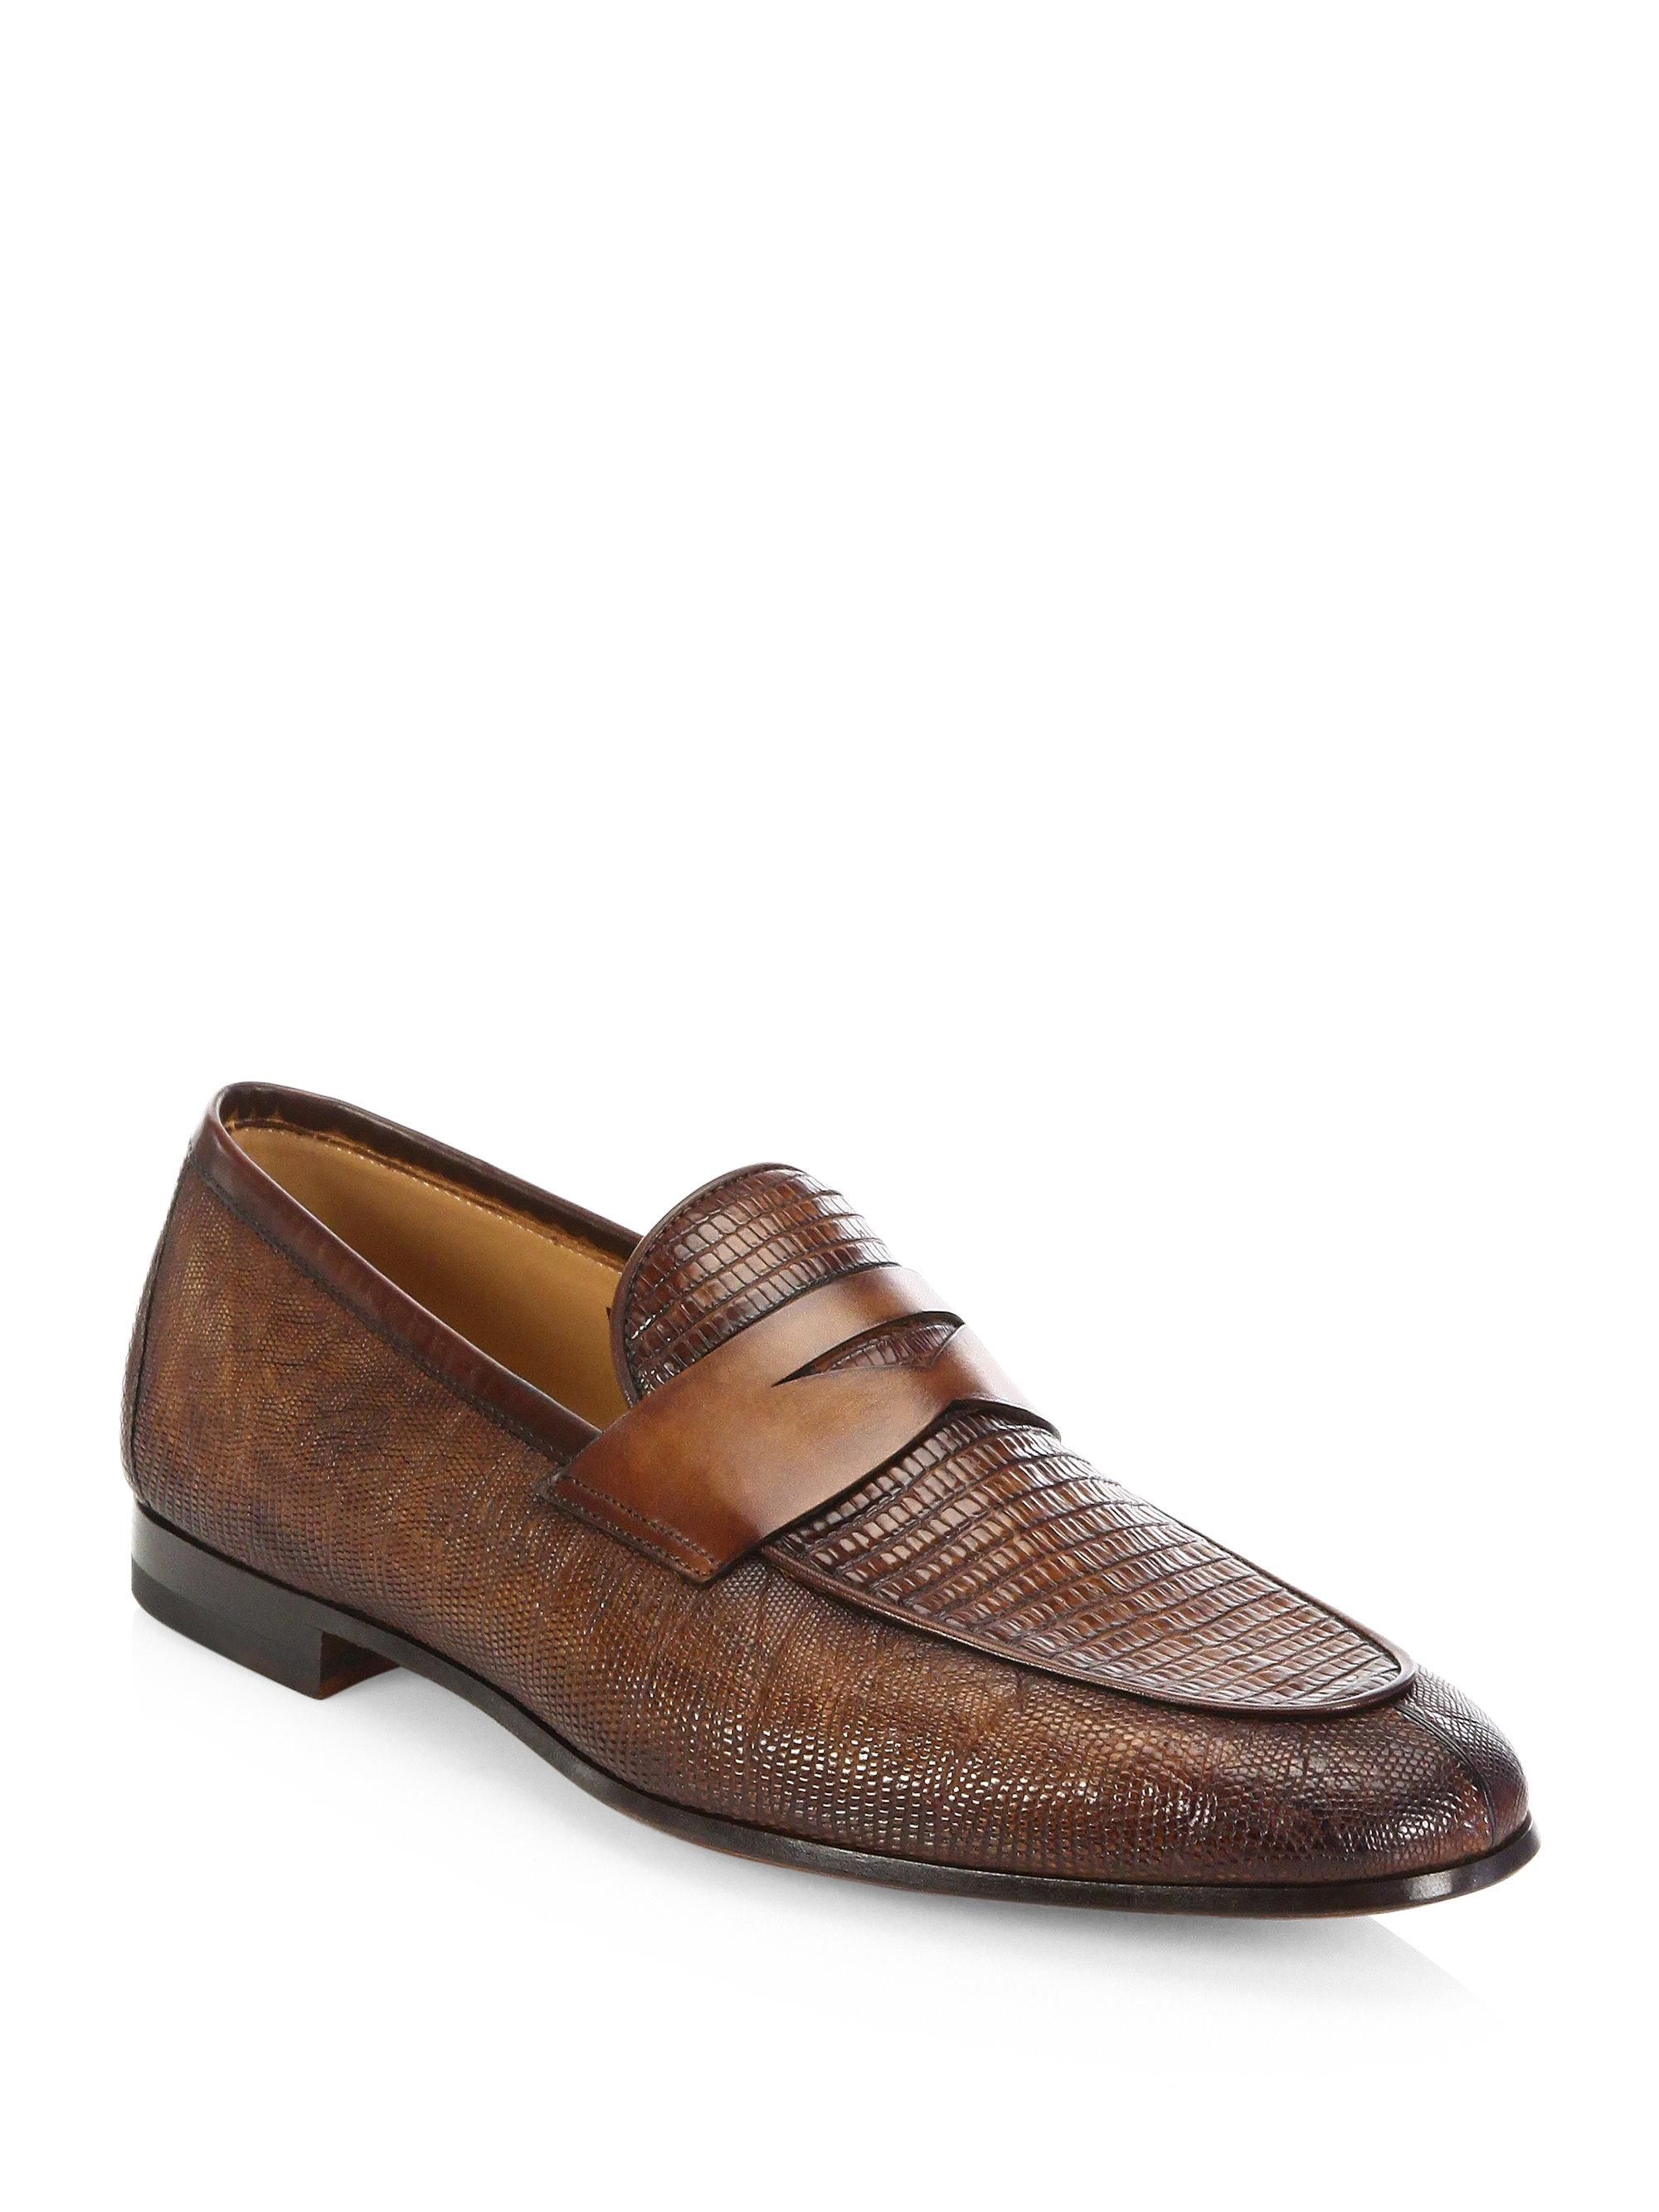 Saks Fifth AvenueCOLLECTION BY MAGNANNI Leather Double Monkstrap Loafers 4hDsFydE